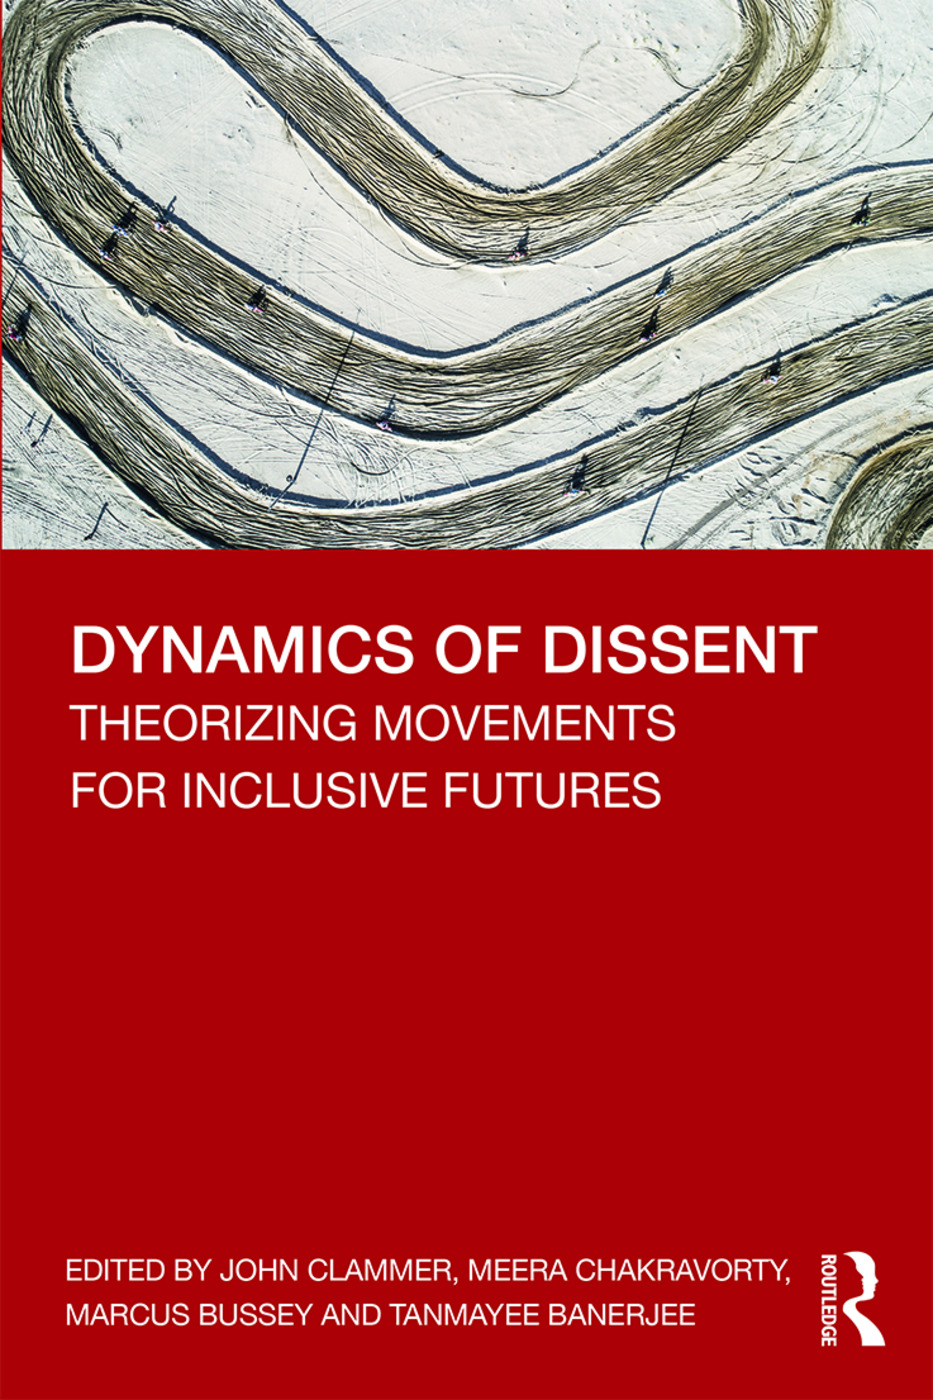 Dynamics of Dissent: Theorizing Movements for Inclusive Futures book cover